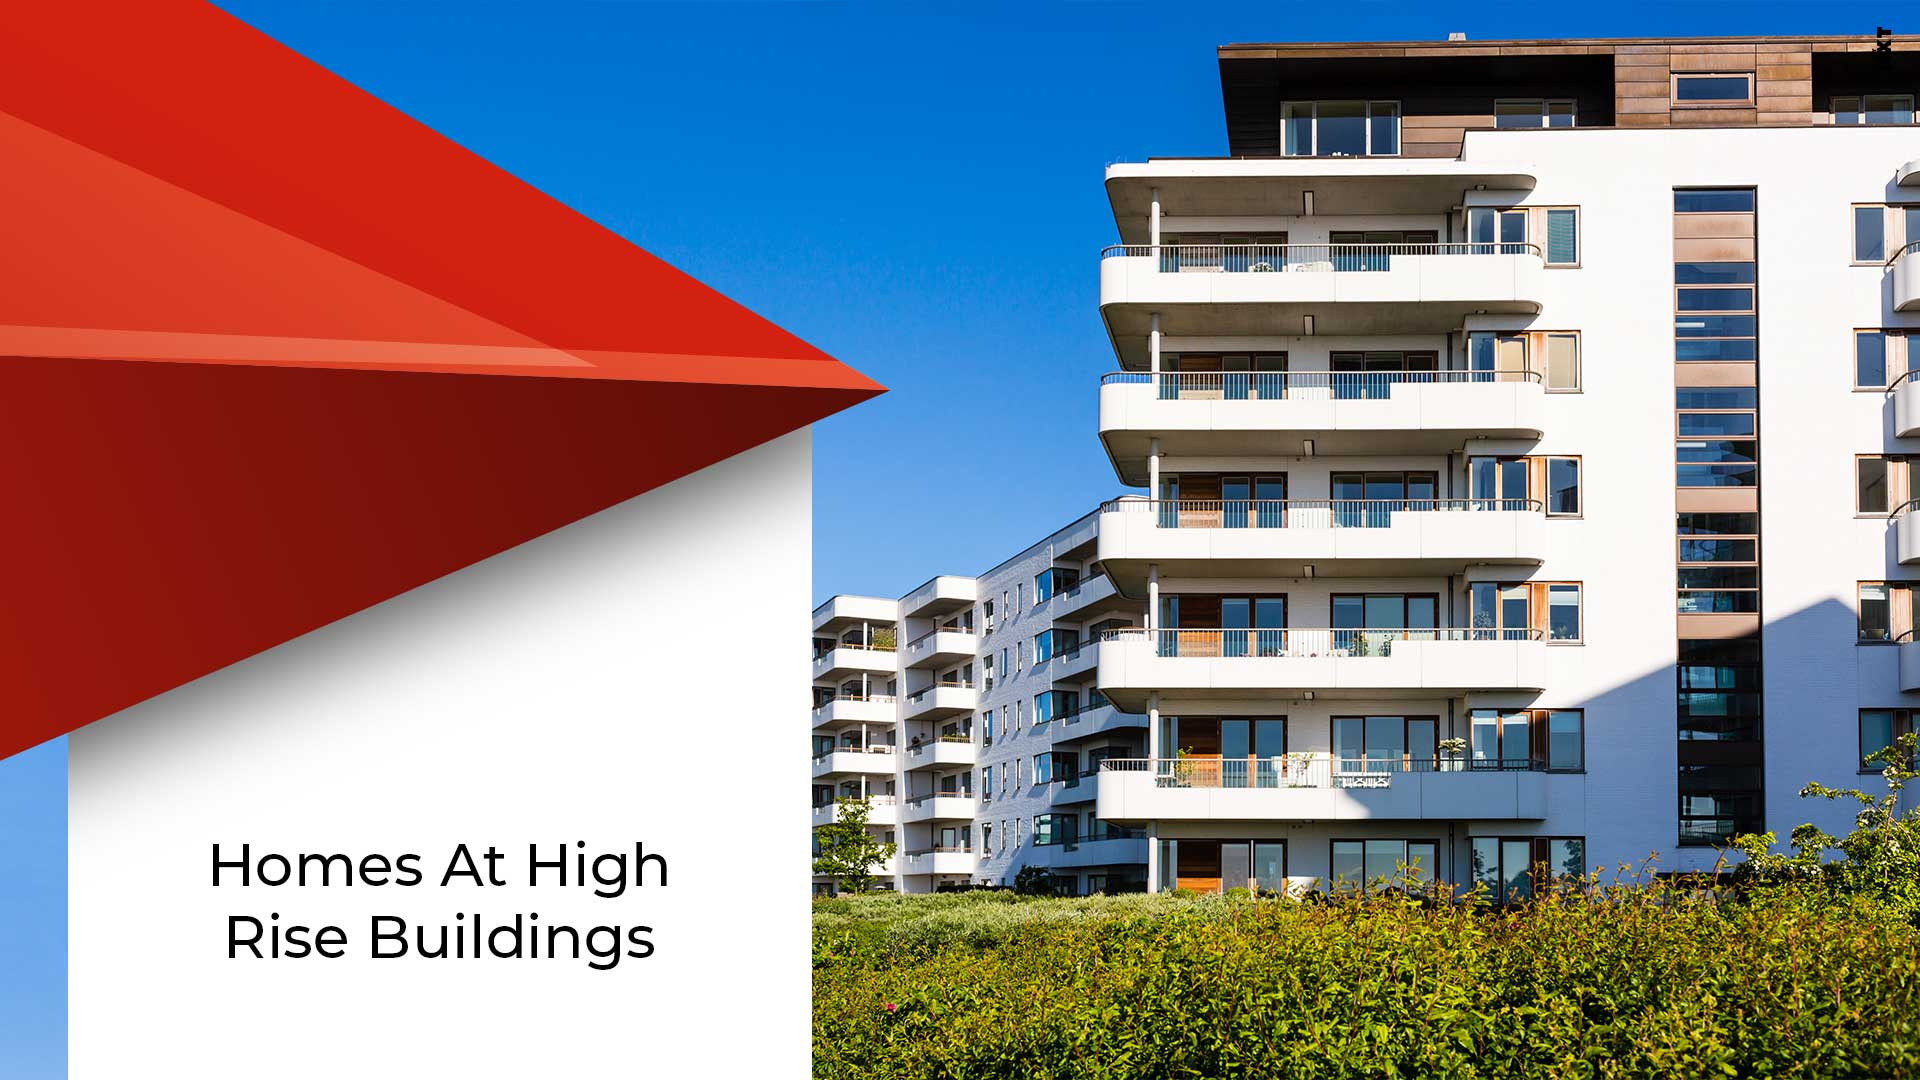 What You Need To Know About High Rise Buildings